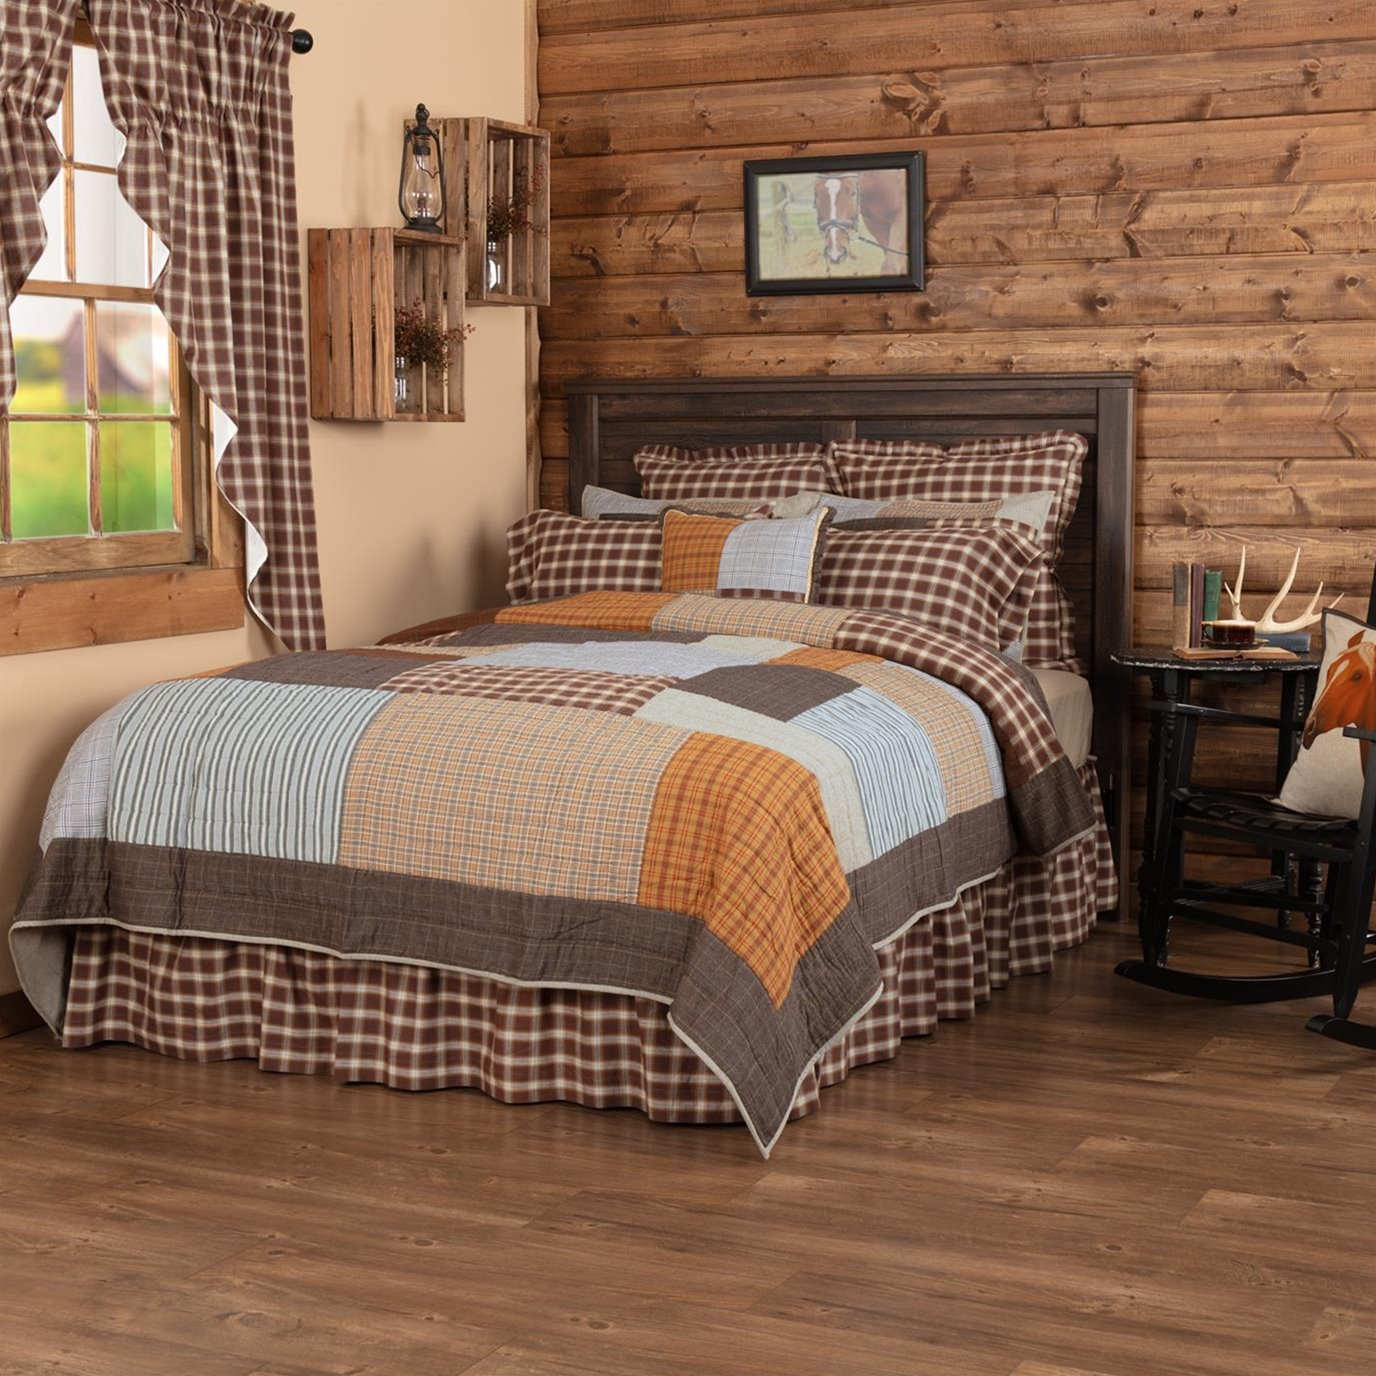 Rory California King Quilt 130Wx115L